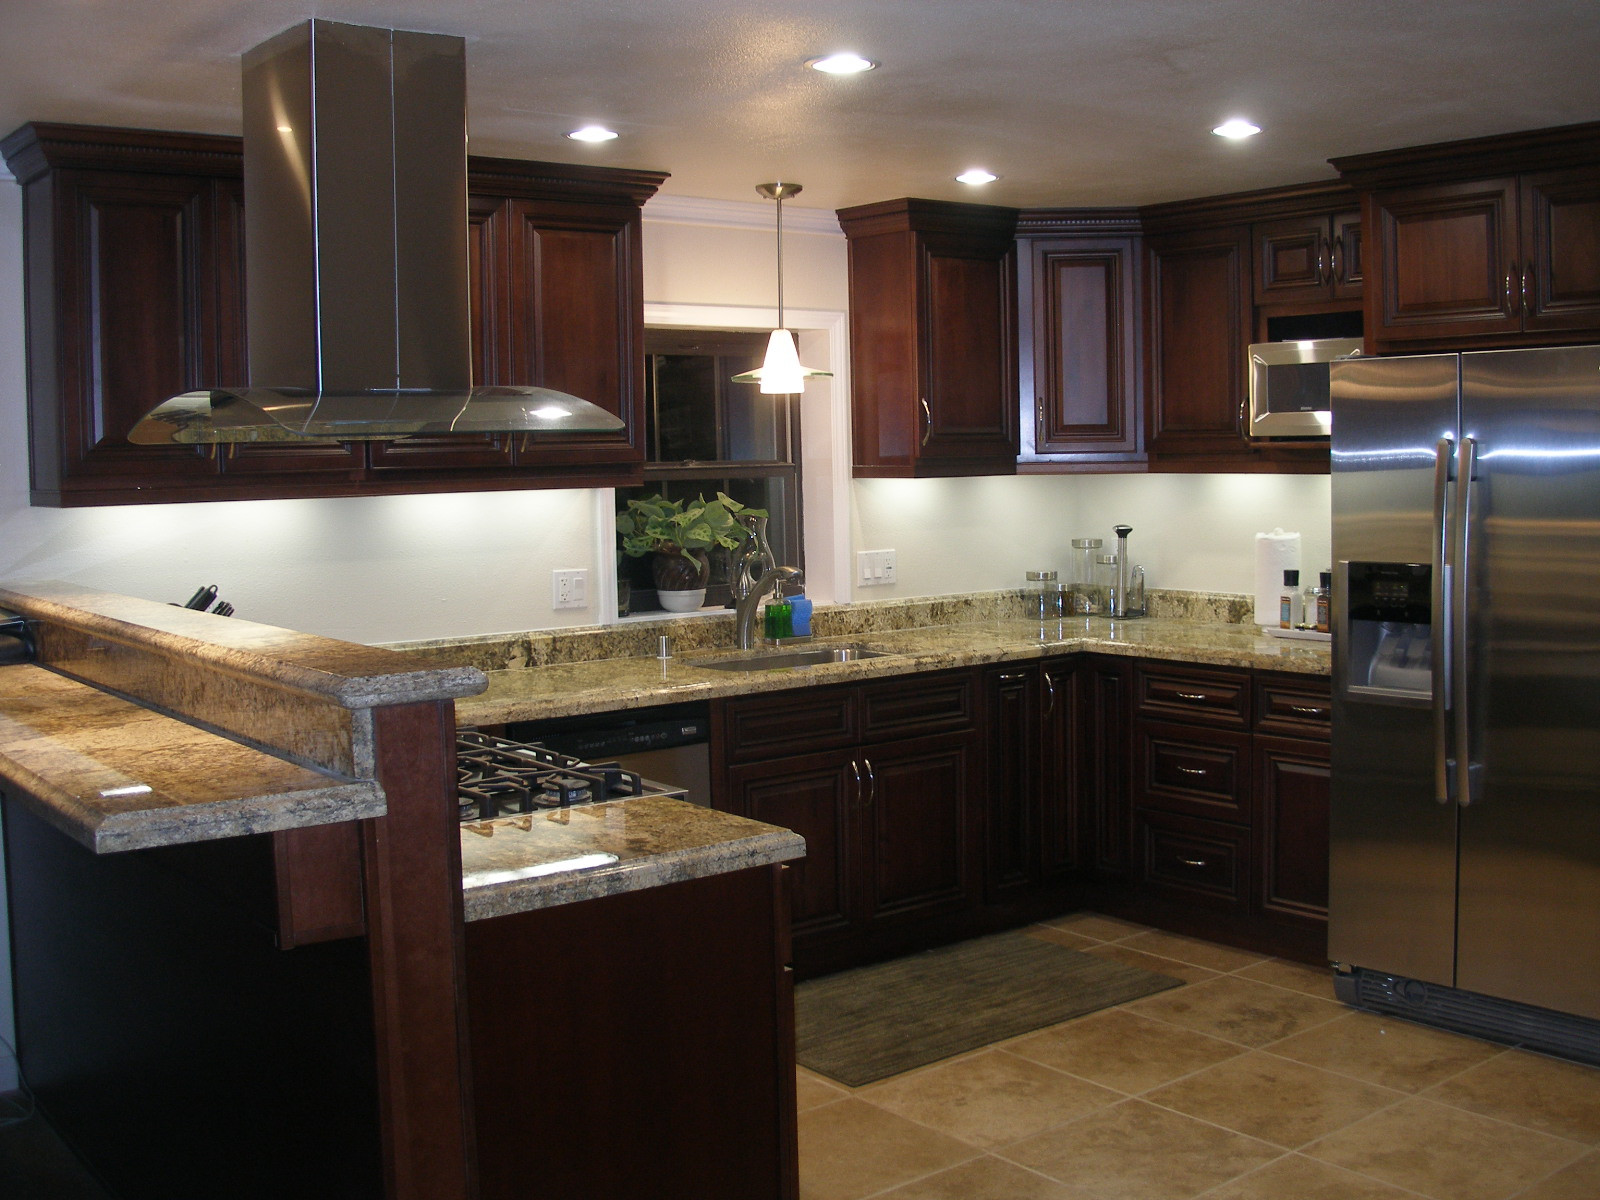 Kitchen remodel bay easy construction for Kitchen reno ideas design